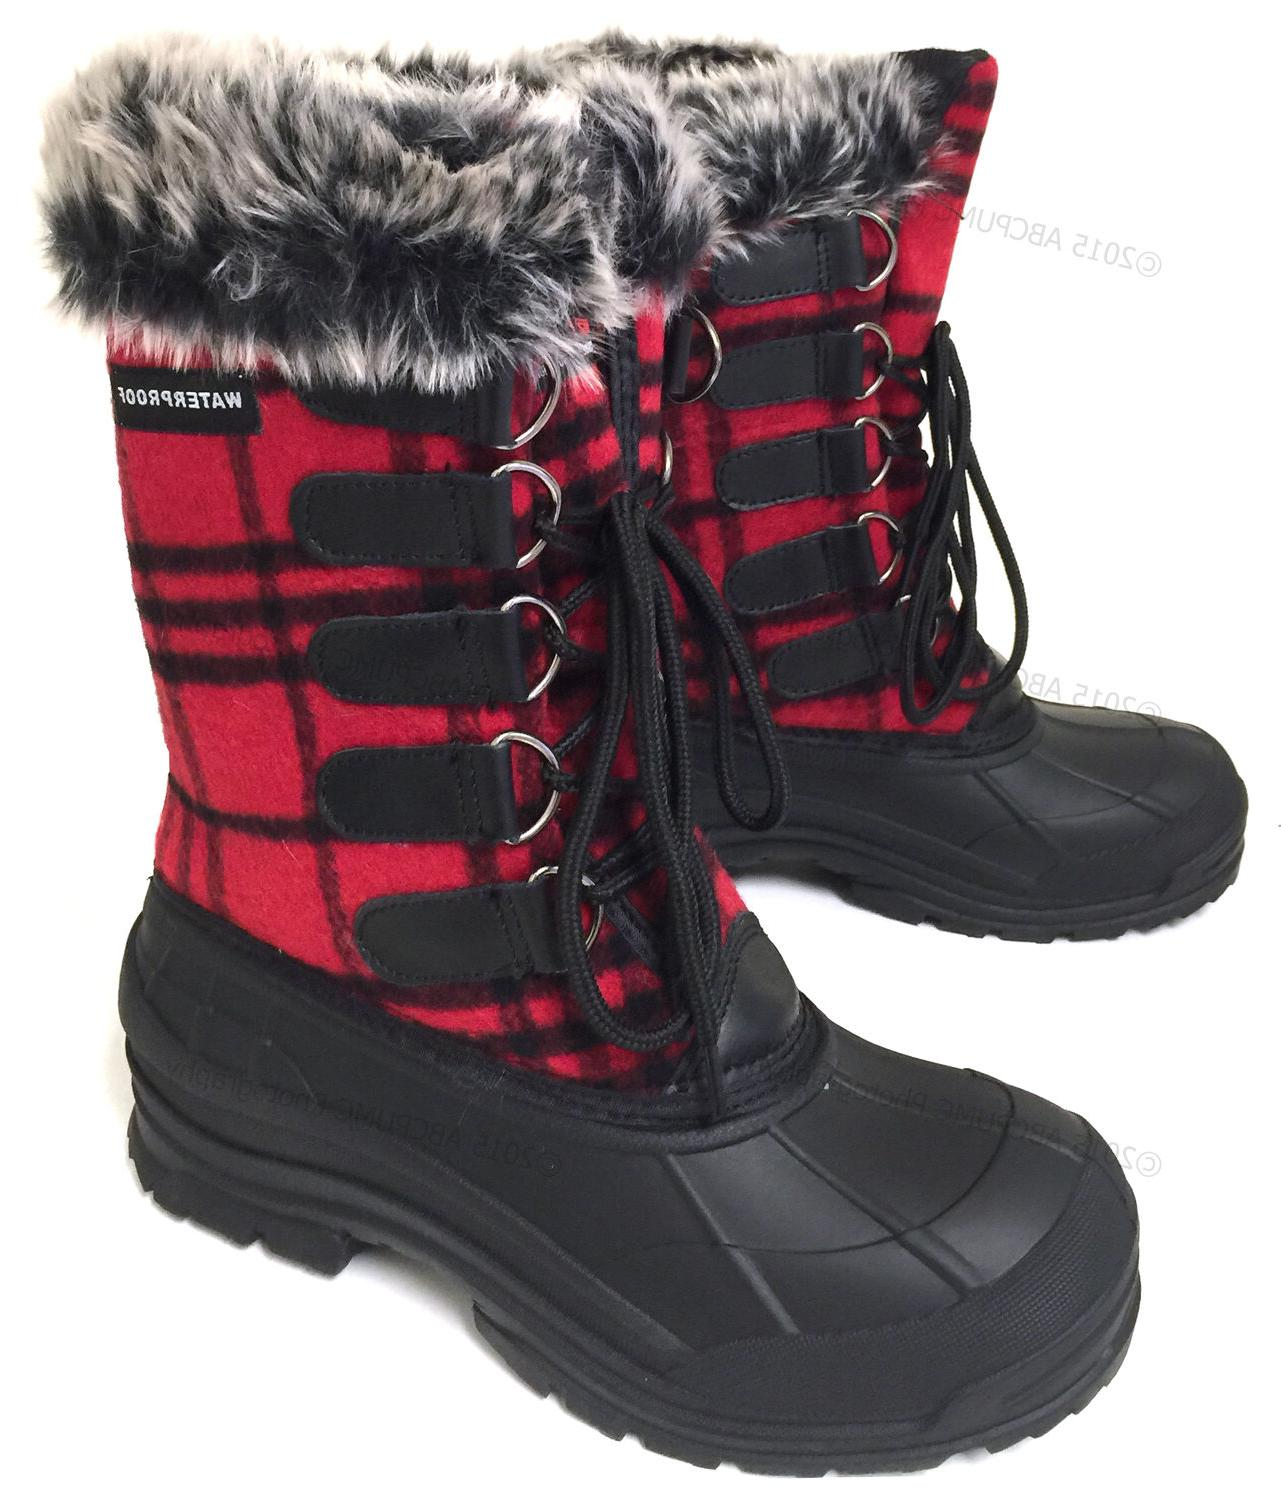 womens winter boots flannel plaid fur warm